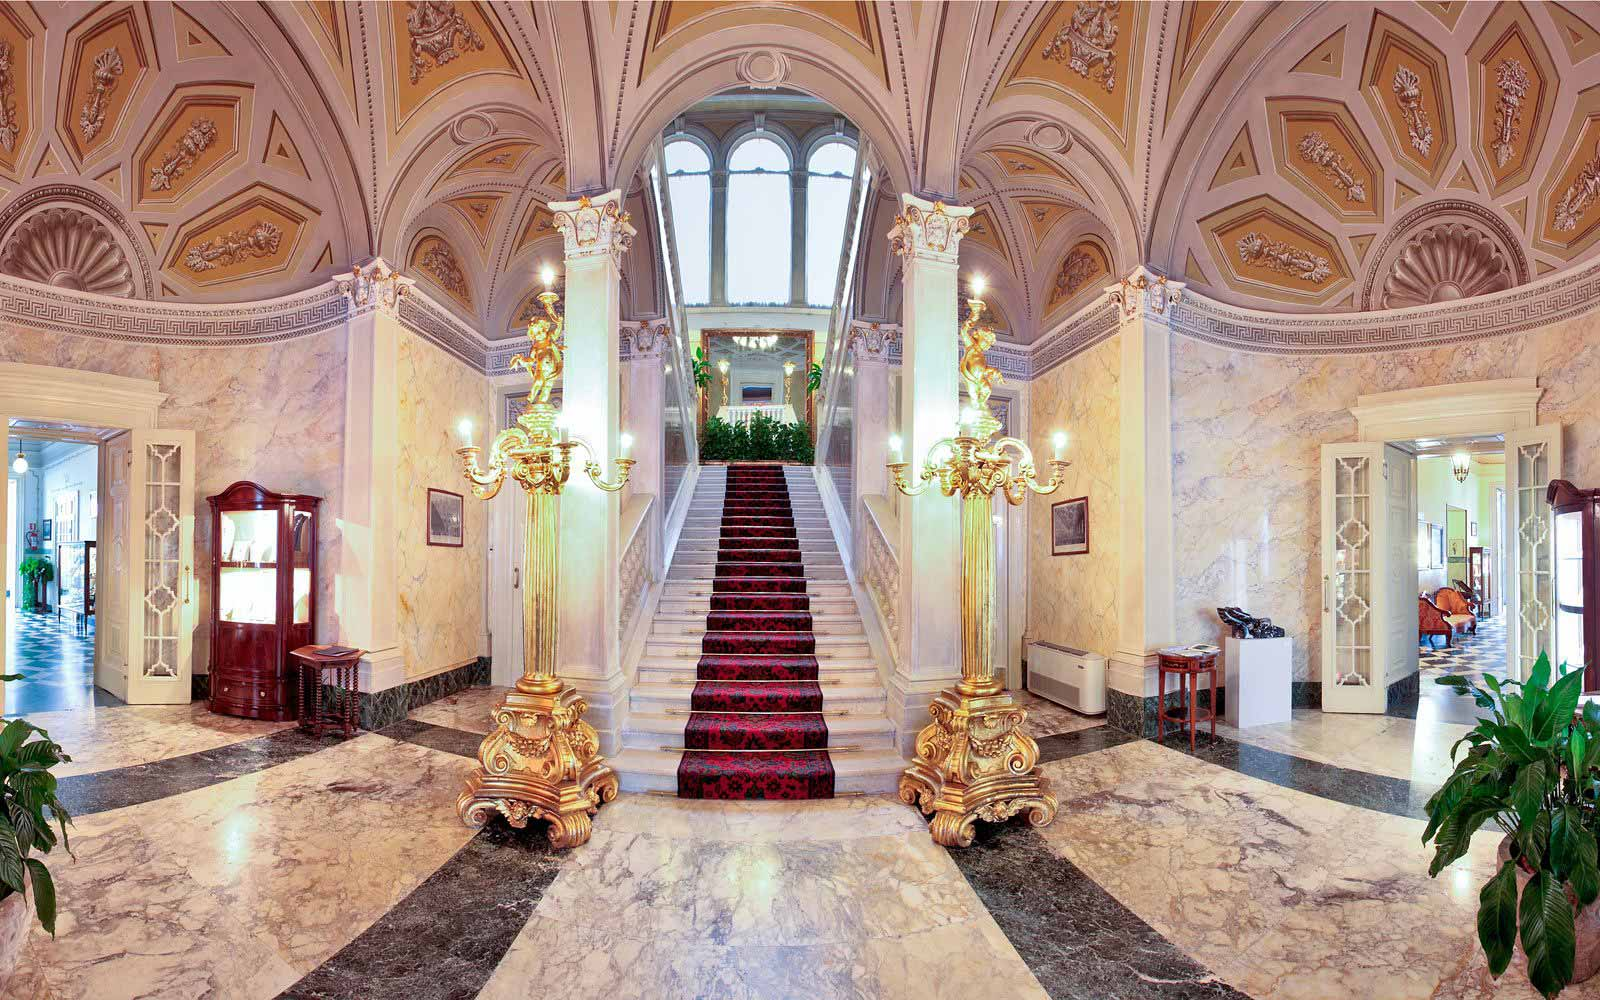 Reception hall at Grand Hotel Villa Serbelloni